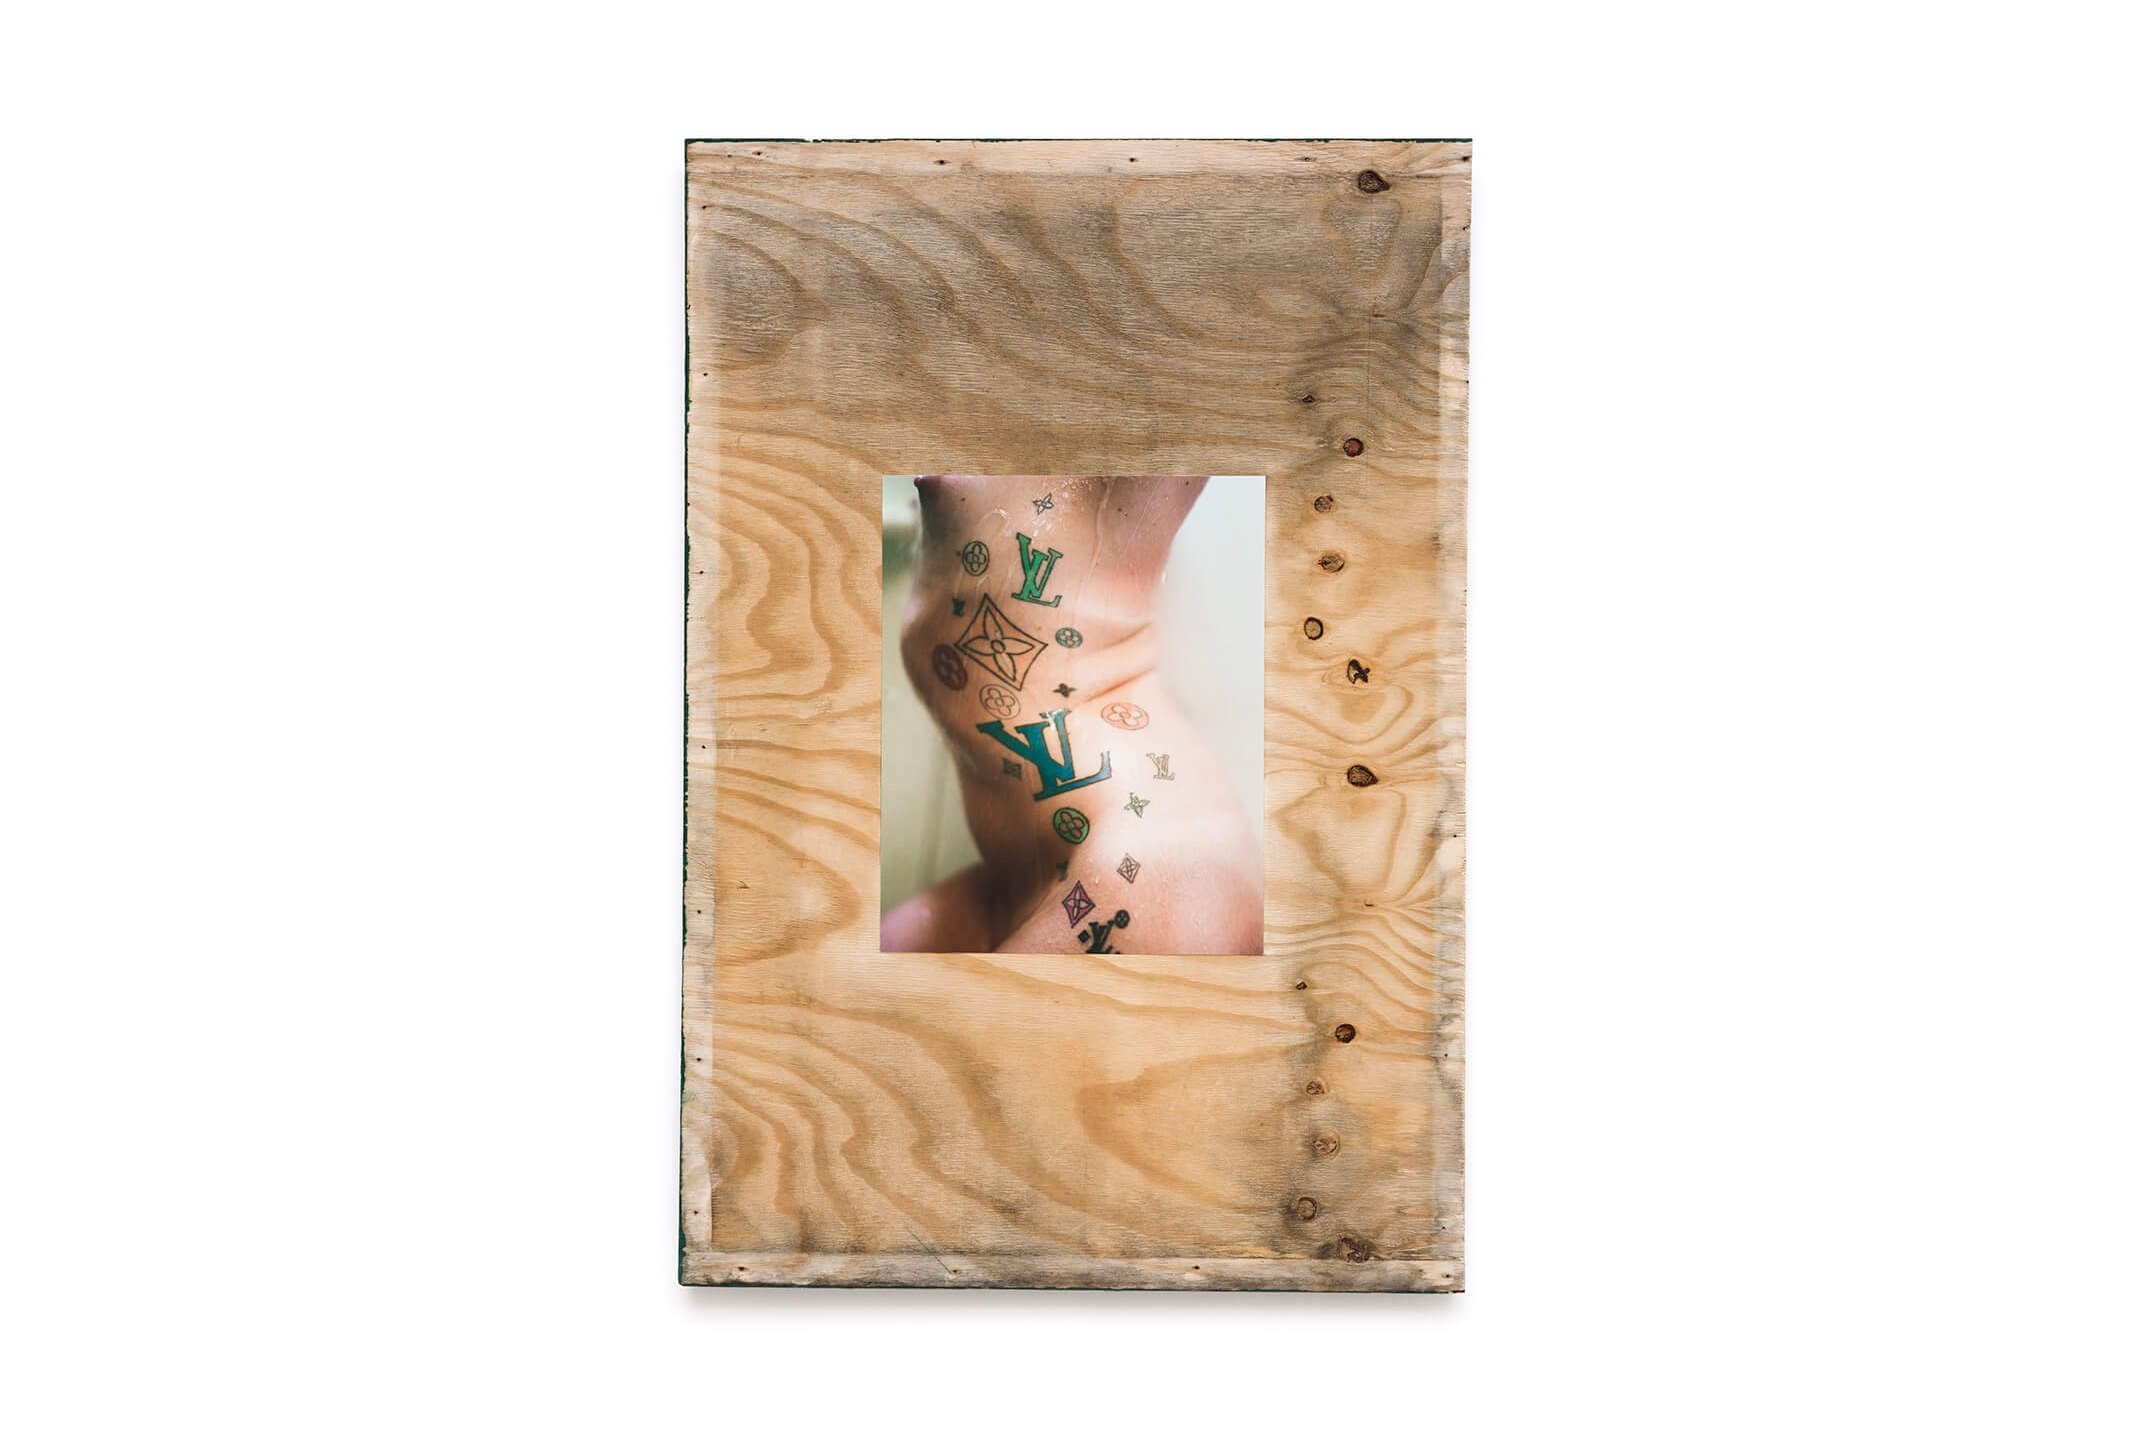 Stewart Uoo, <em>Untitled (Shower)</em>, 2015, archival pigment print on cotton paper, salvaged plywood, latex paint, 122 × 84 × 1 cm - Mendes Wood DM